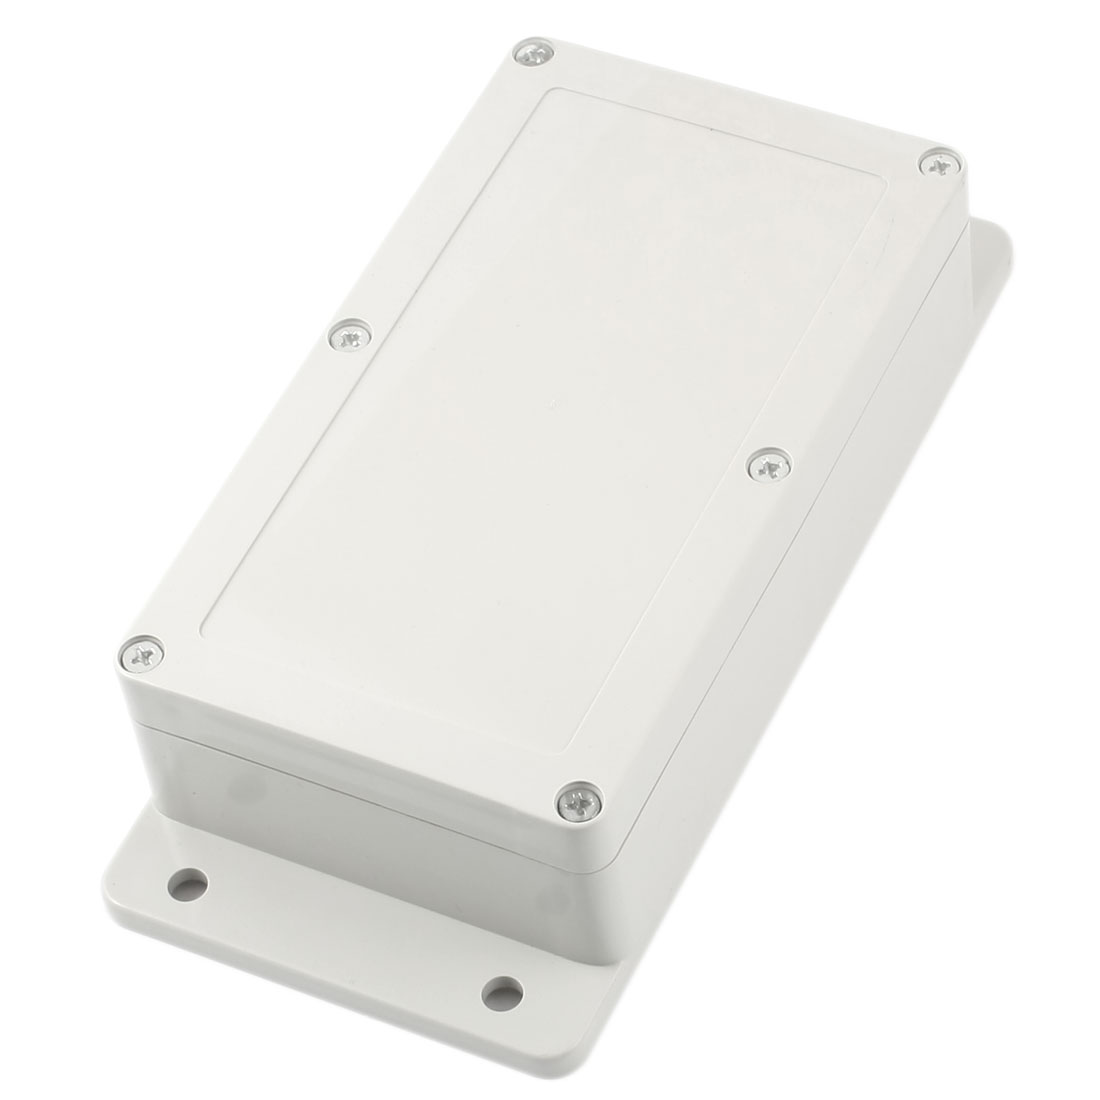 157mm x 90mm x 45mm Dustproof IP65 Rectangle Plastic Sealed Electronic Project Power Junction Enclosure Box Protection